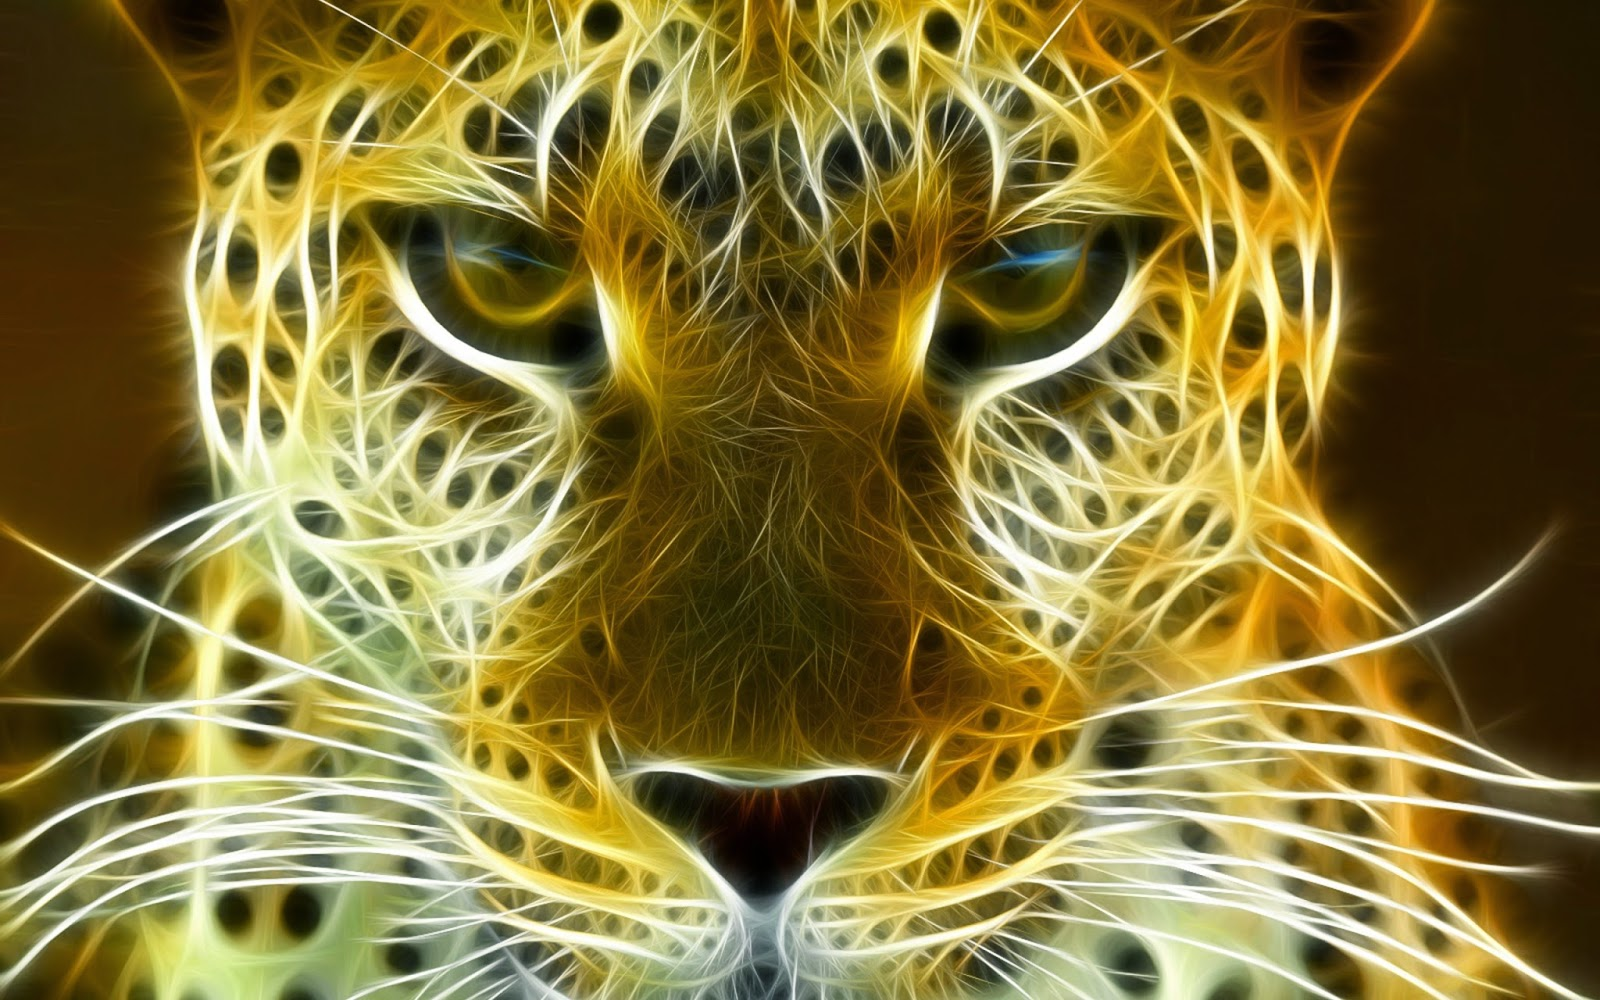 Digital Leopard Art Desktop Wallpaper